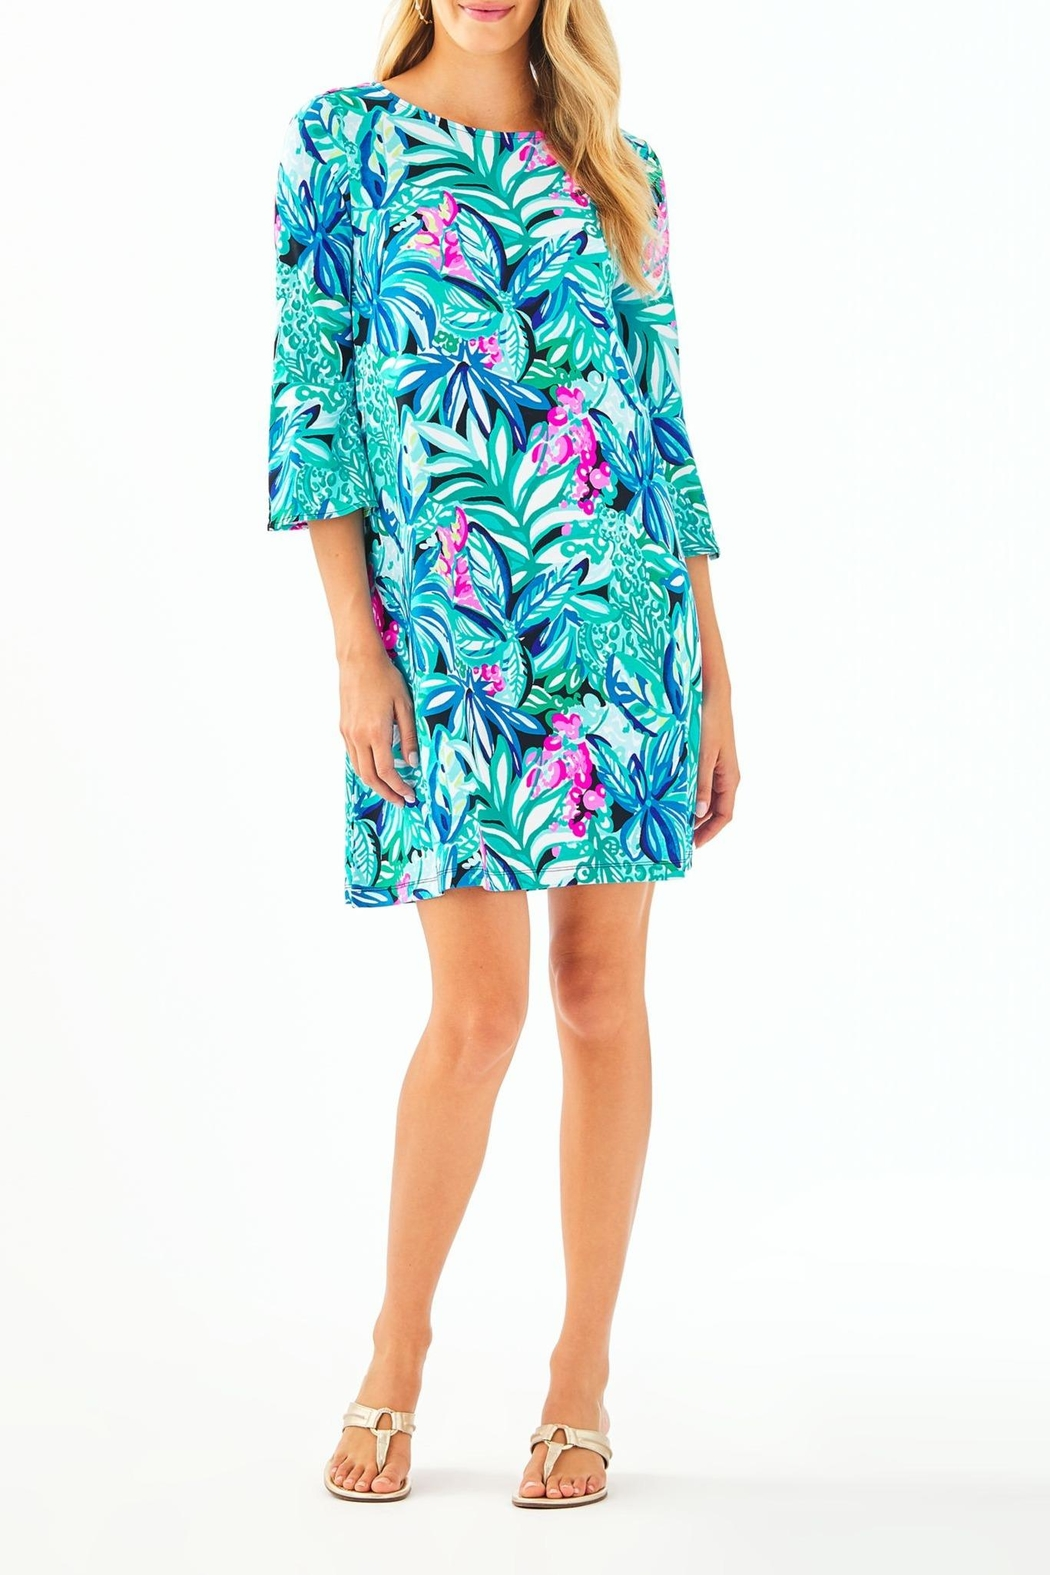 Lilly Pulitzer Ophelia Swing Dress - Back Cropped Image